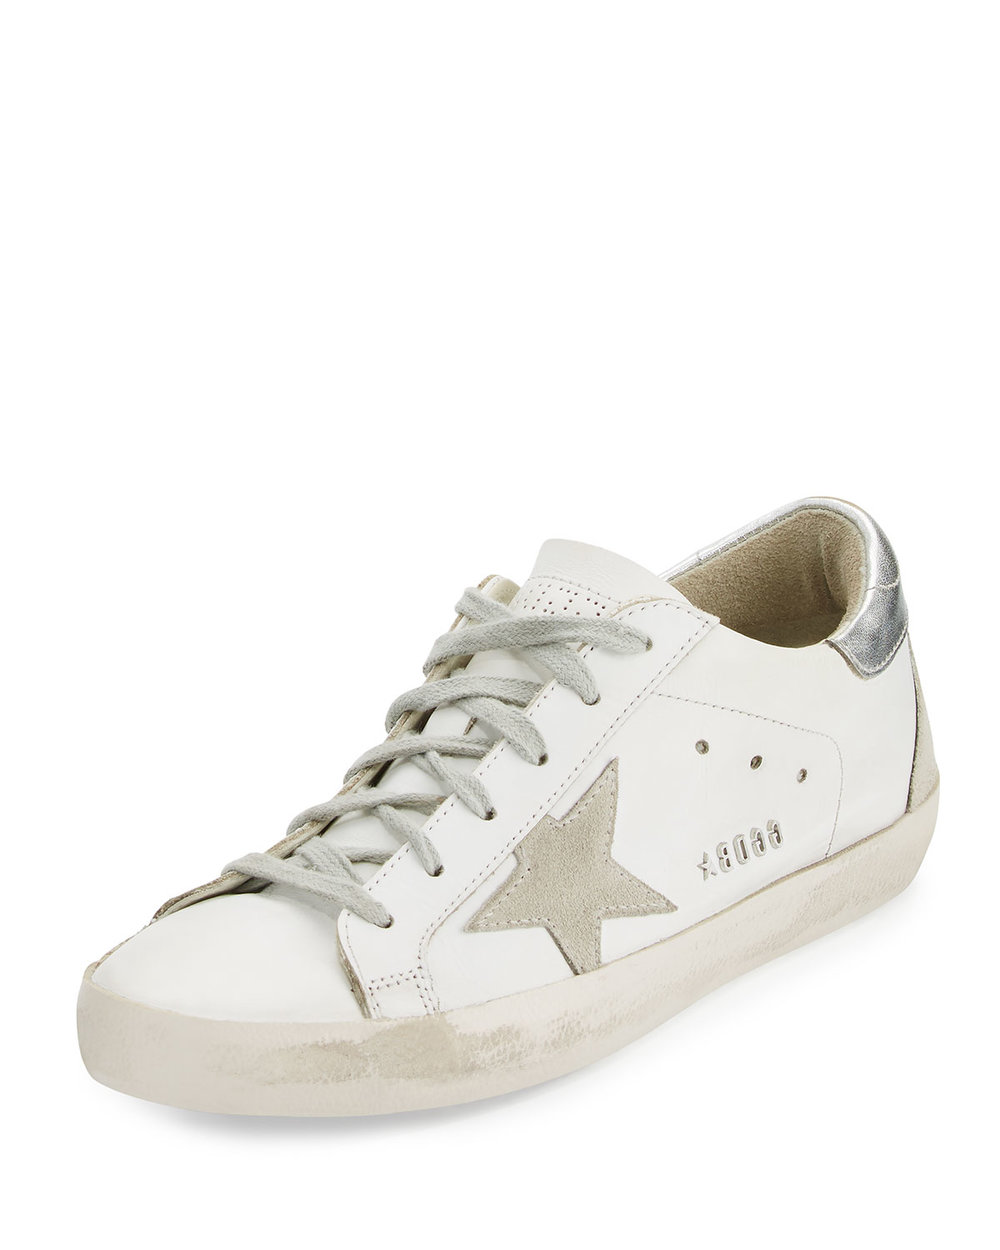 Golden Goose Distressed Leather Low-Top Sneakers, White/Silver